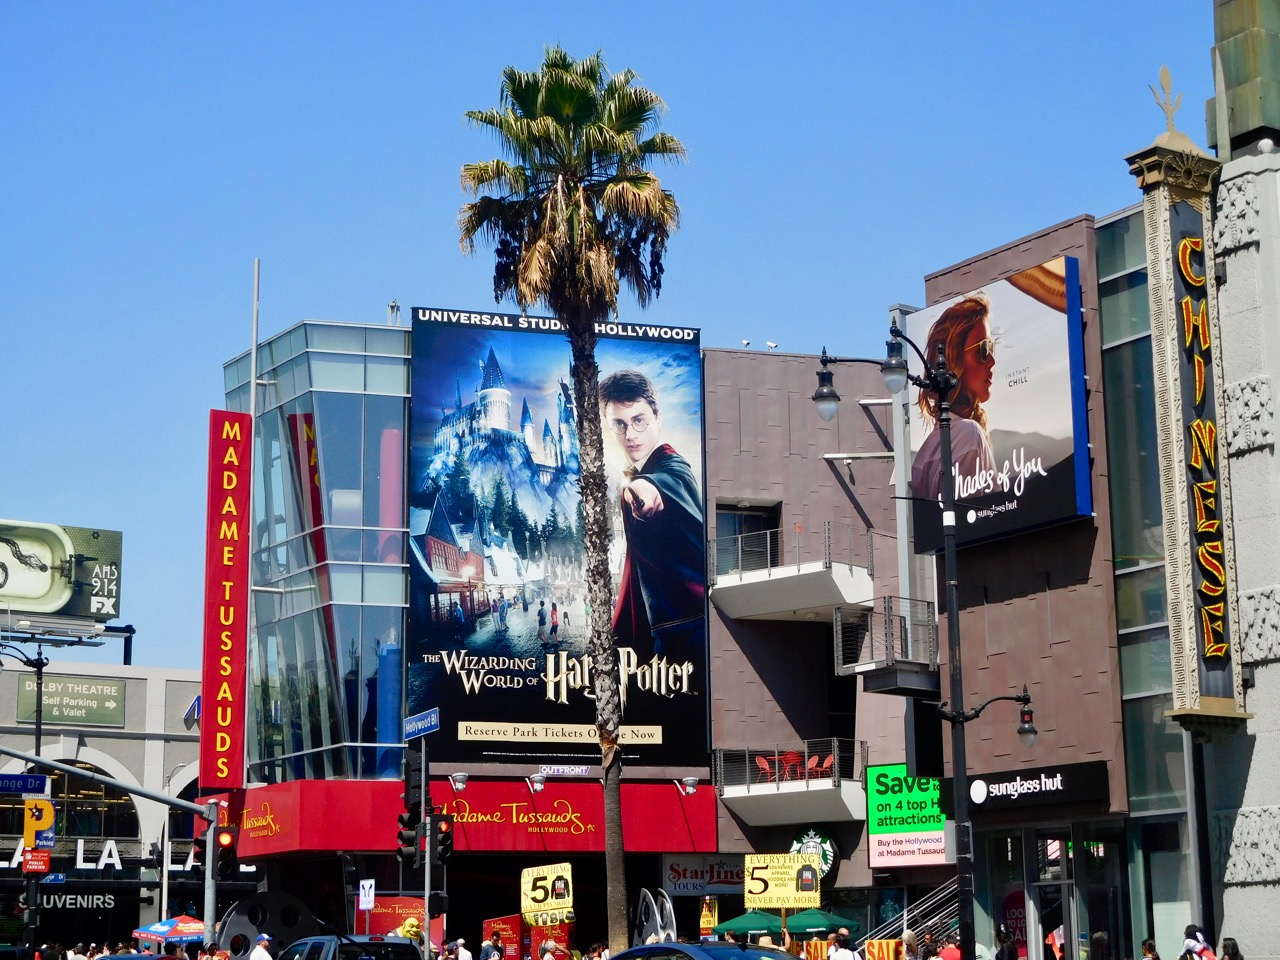 3 jours à Hollywood - Hollywood Boulevard (5)